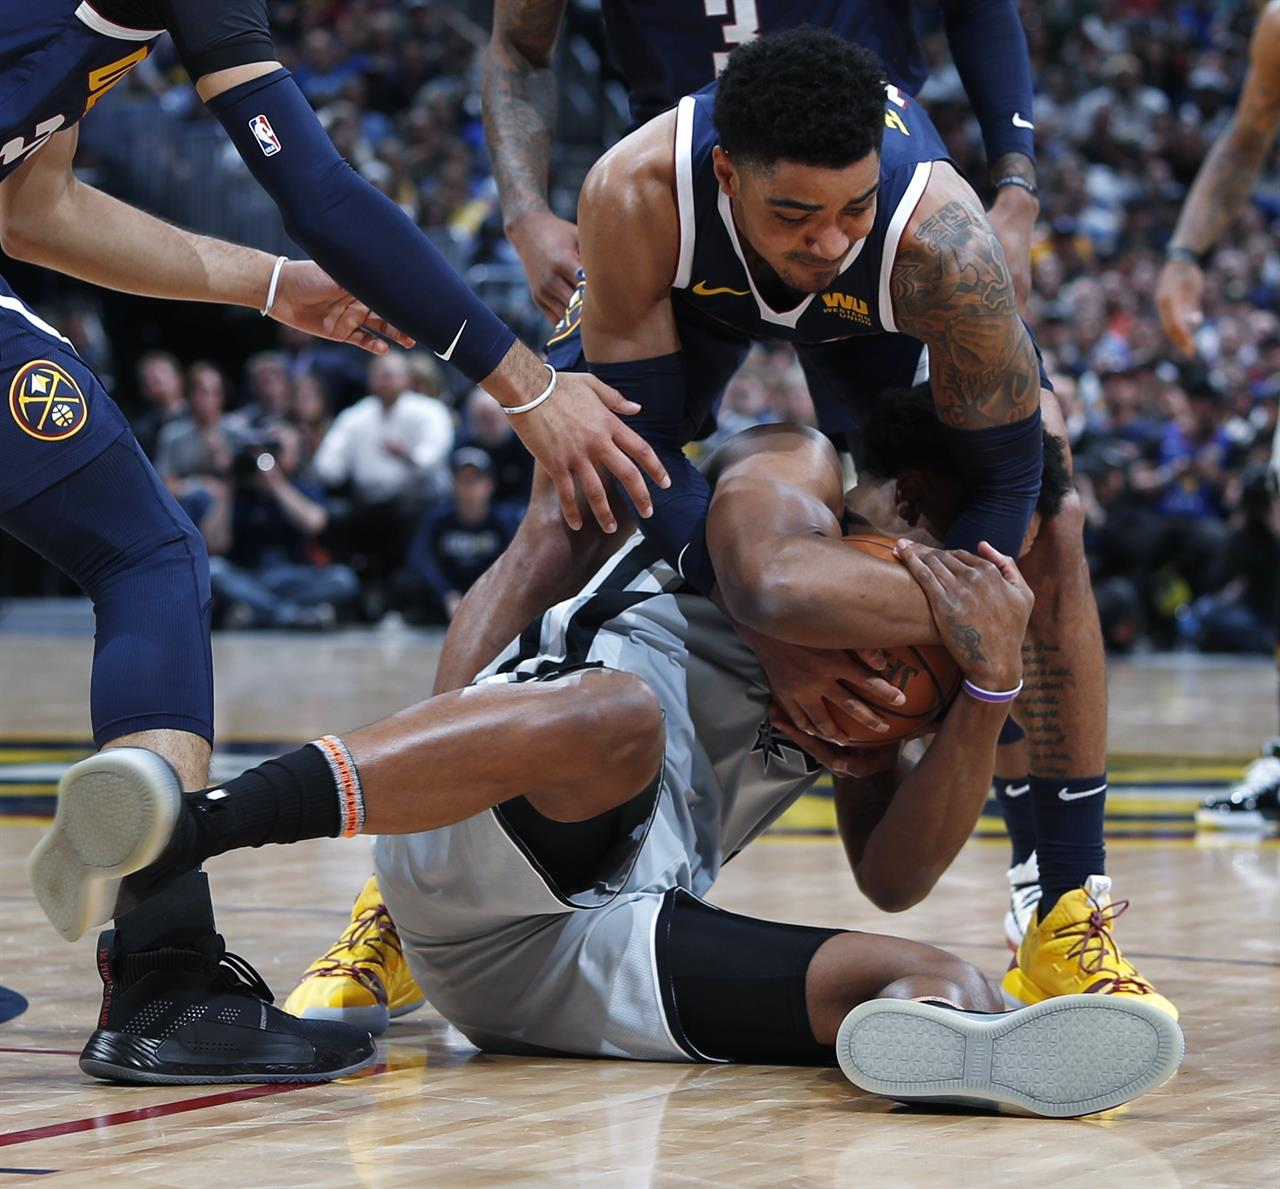 Denver Nuggets Game Tonight: Jokic, Nuggets Hold Off Spurs 90-86 In Game 7 To Advance